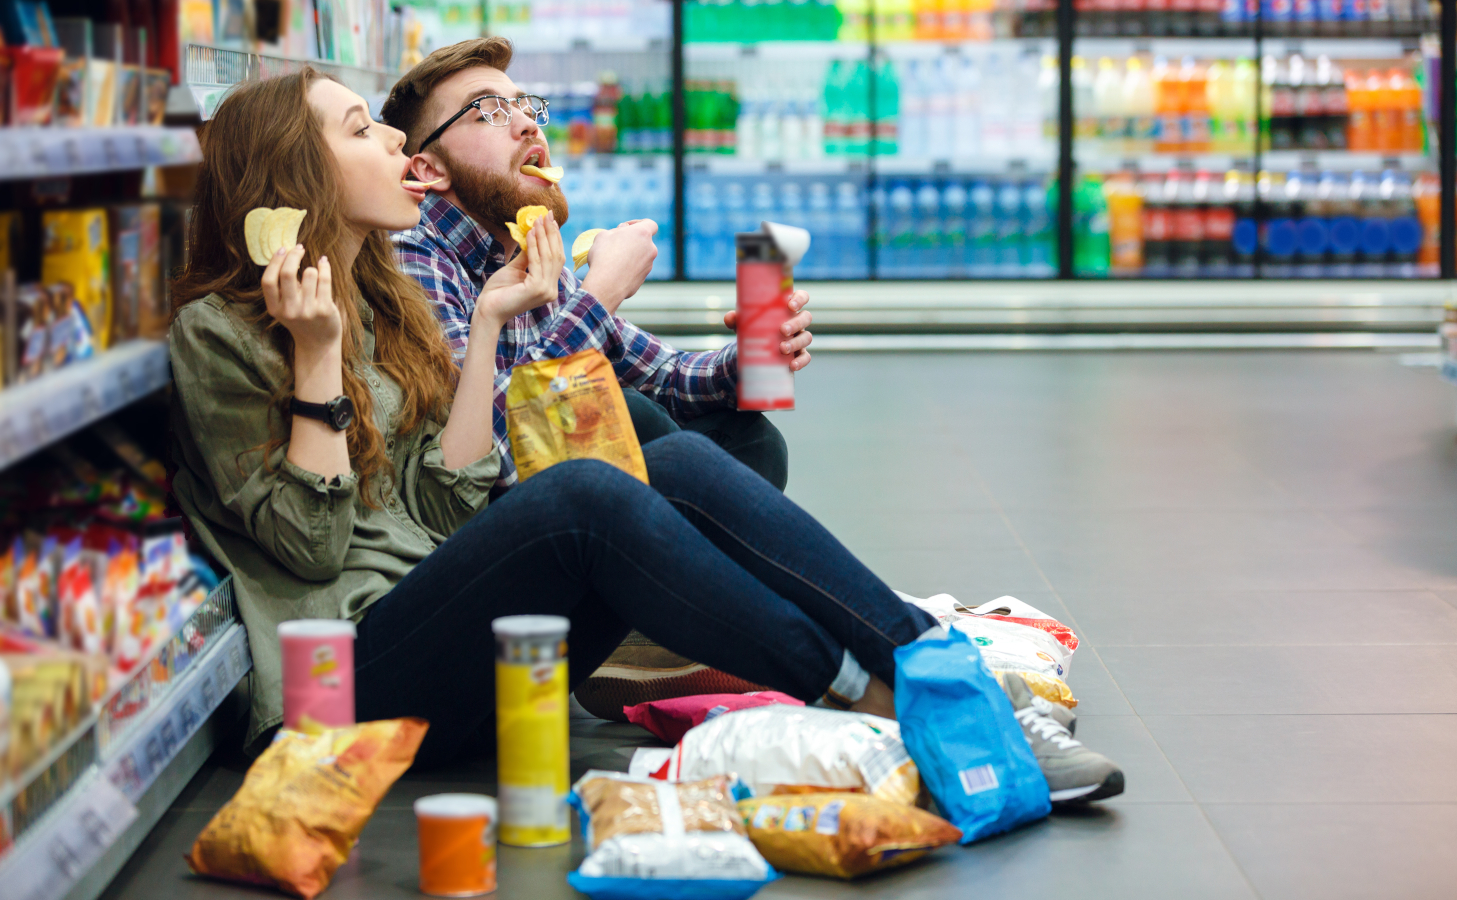 Consumer-snacking-AdobeStock_143889007-72dpi.jpeg